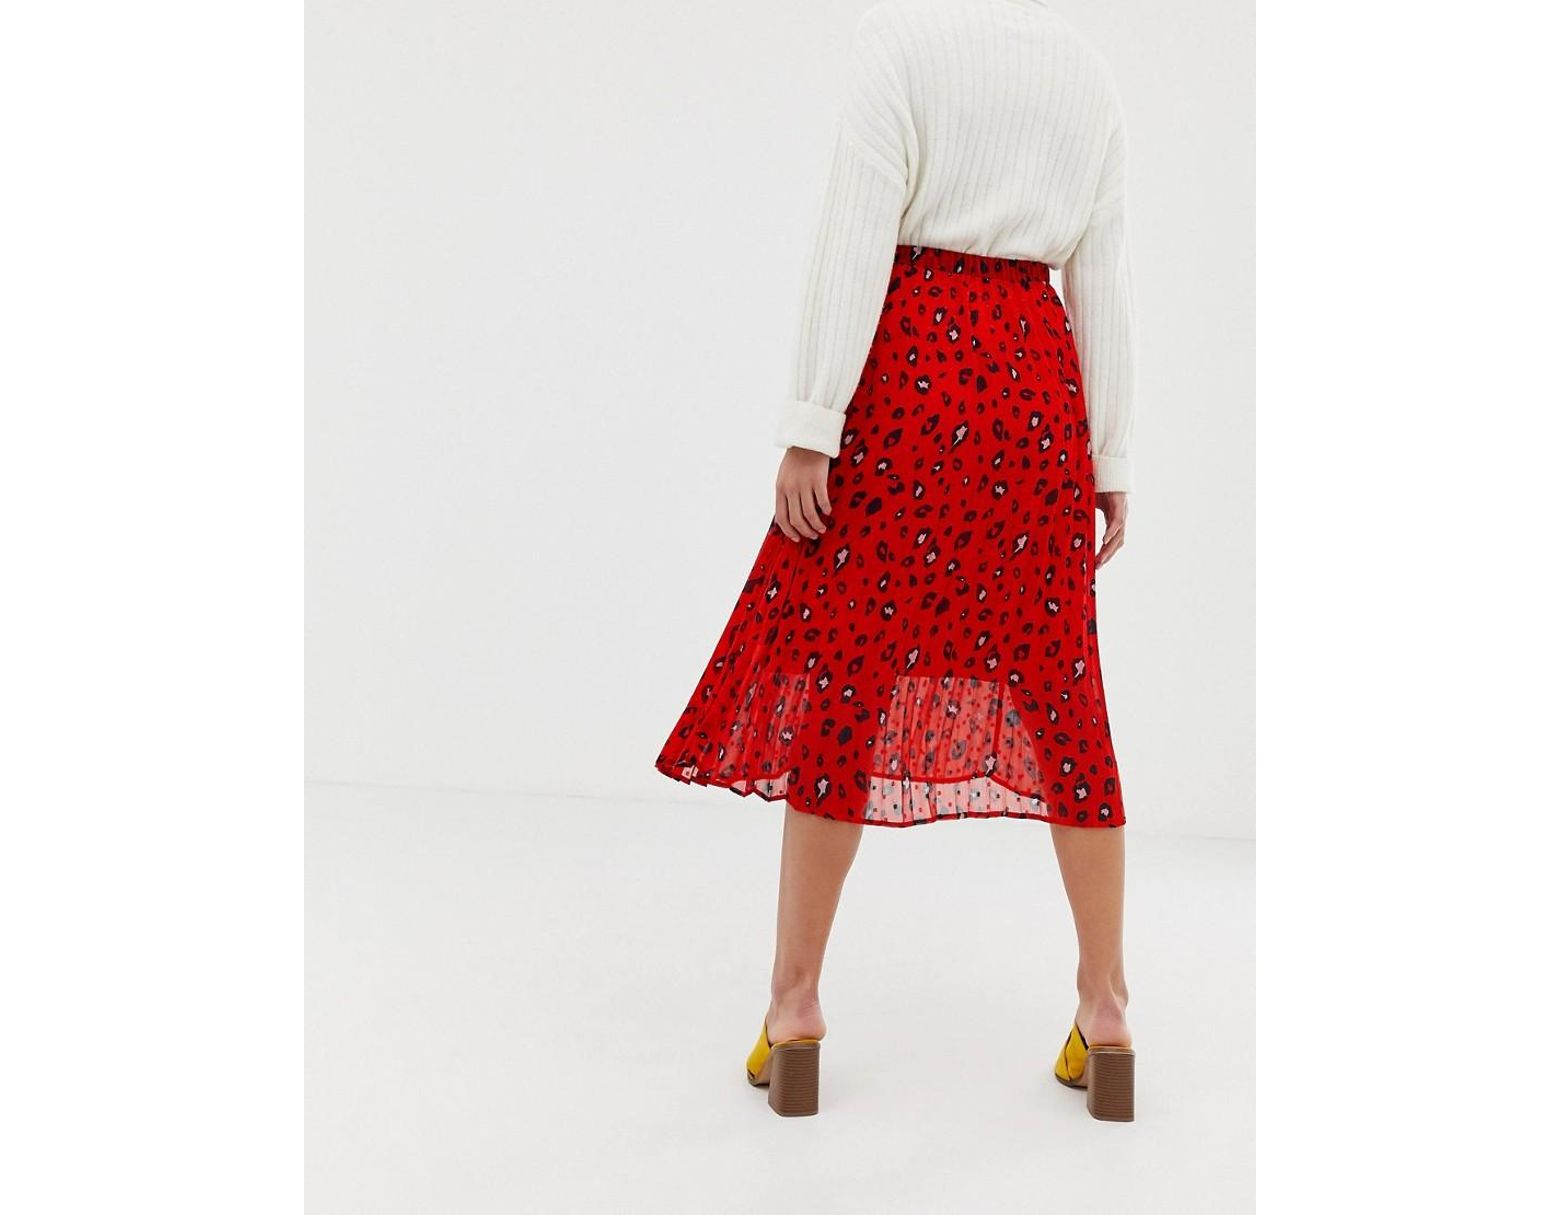 59937dd85 SELECTED Femme Abstract Leopard Print Pleated Skirt in Red - Lyst